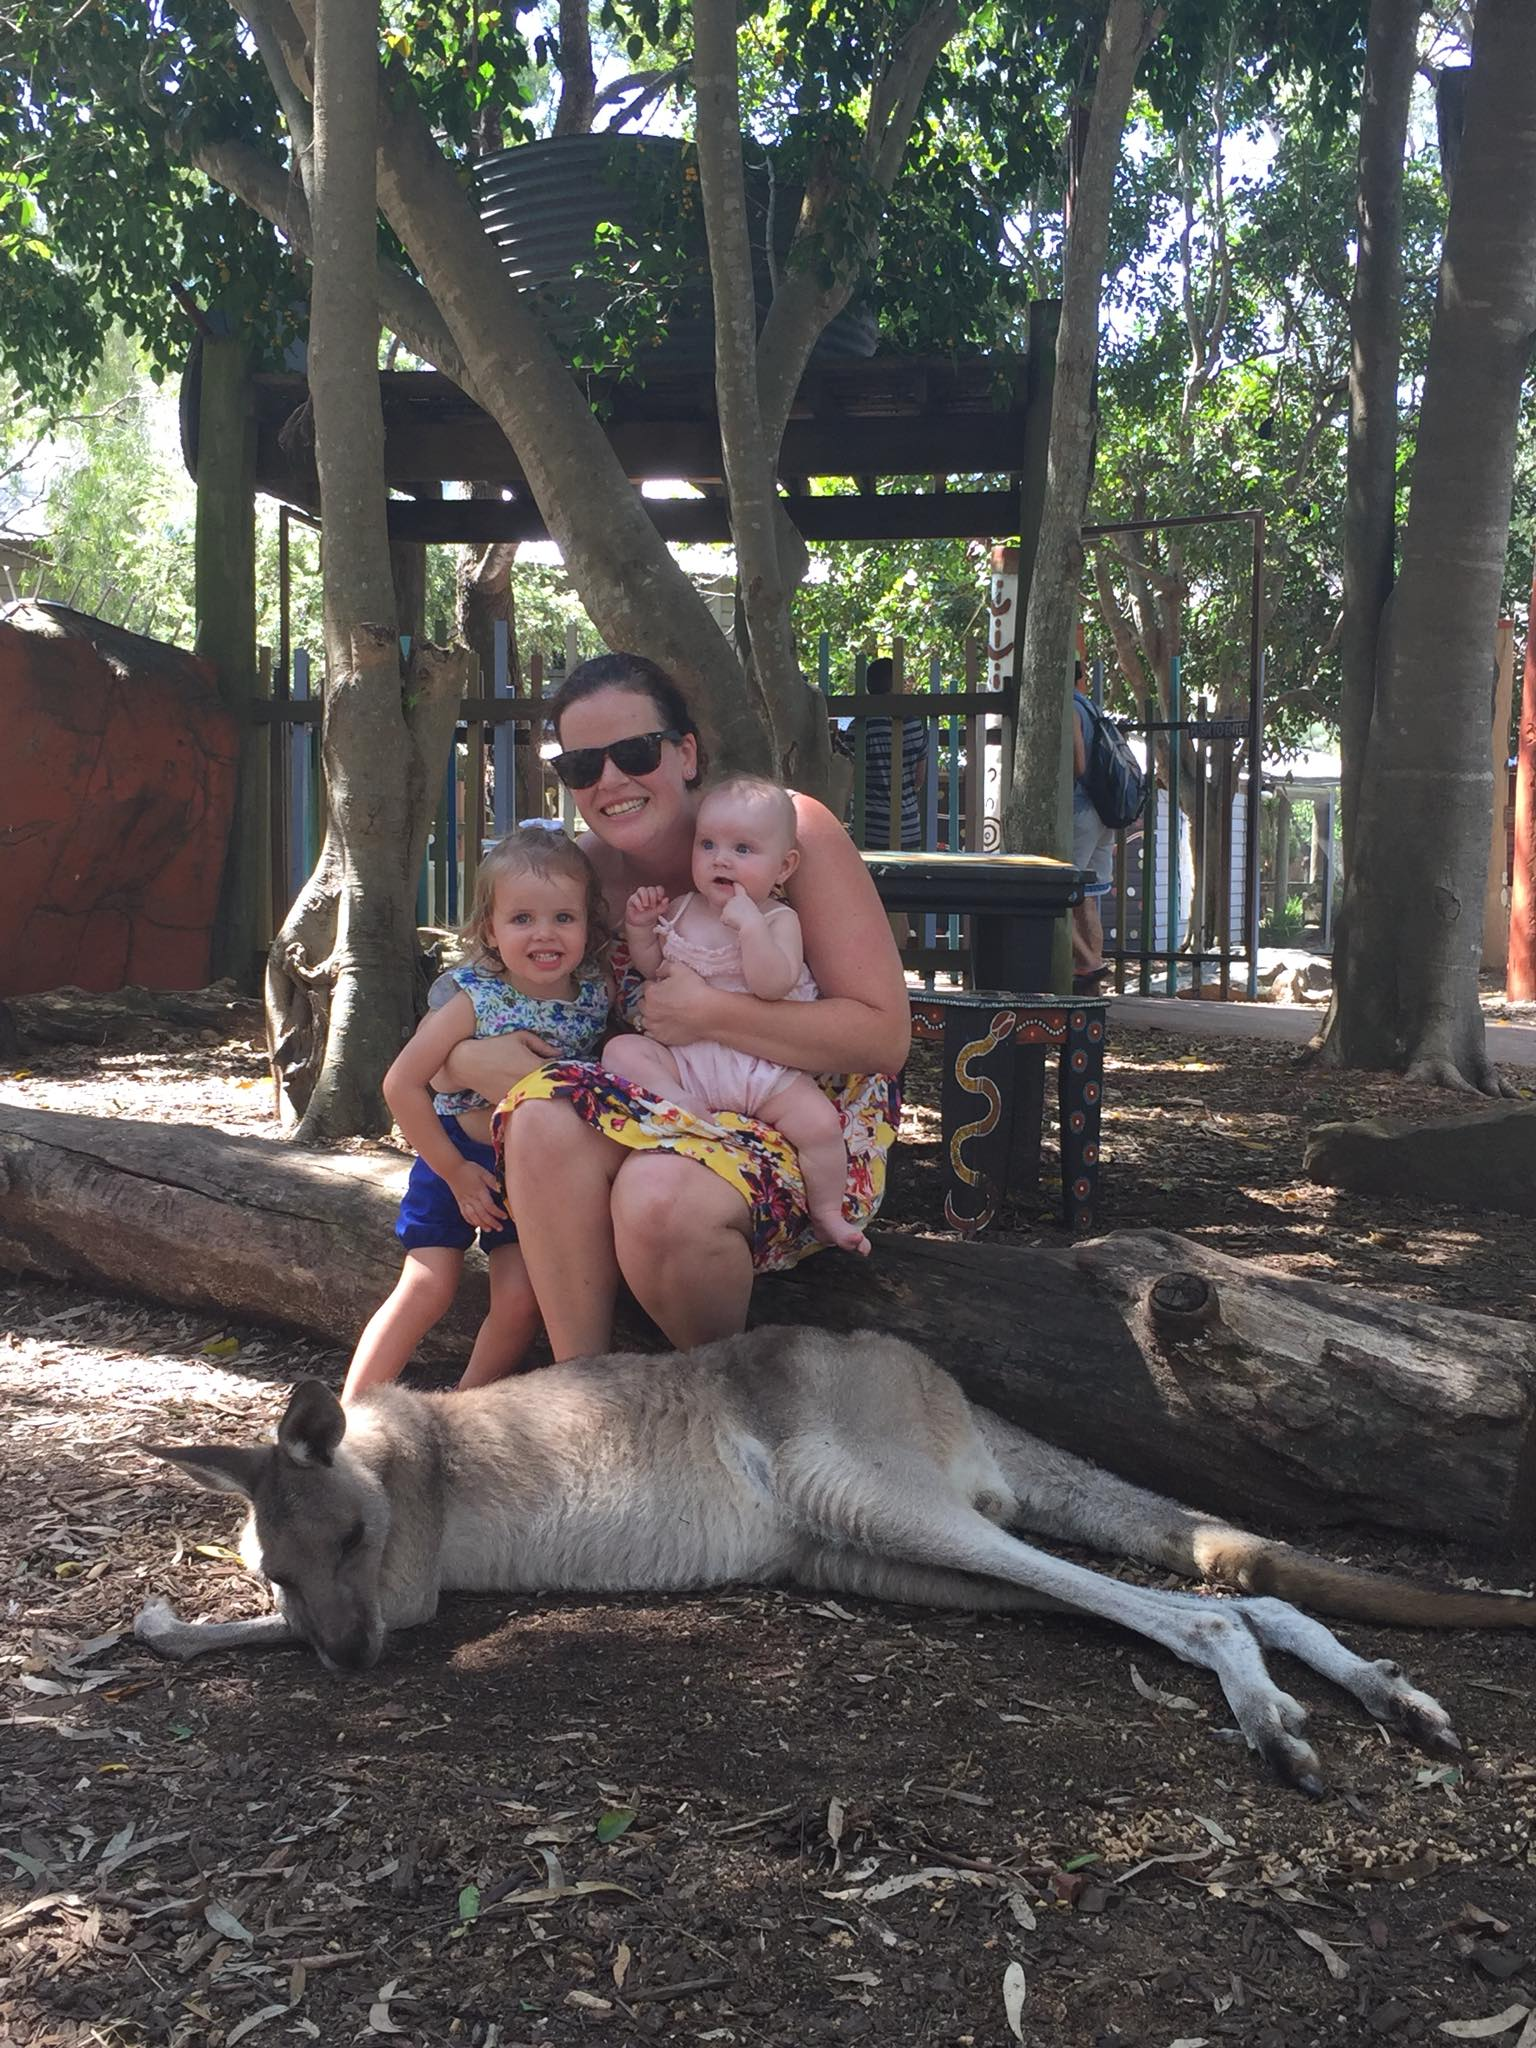 A family at Dreamworld with kangaroos